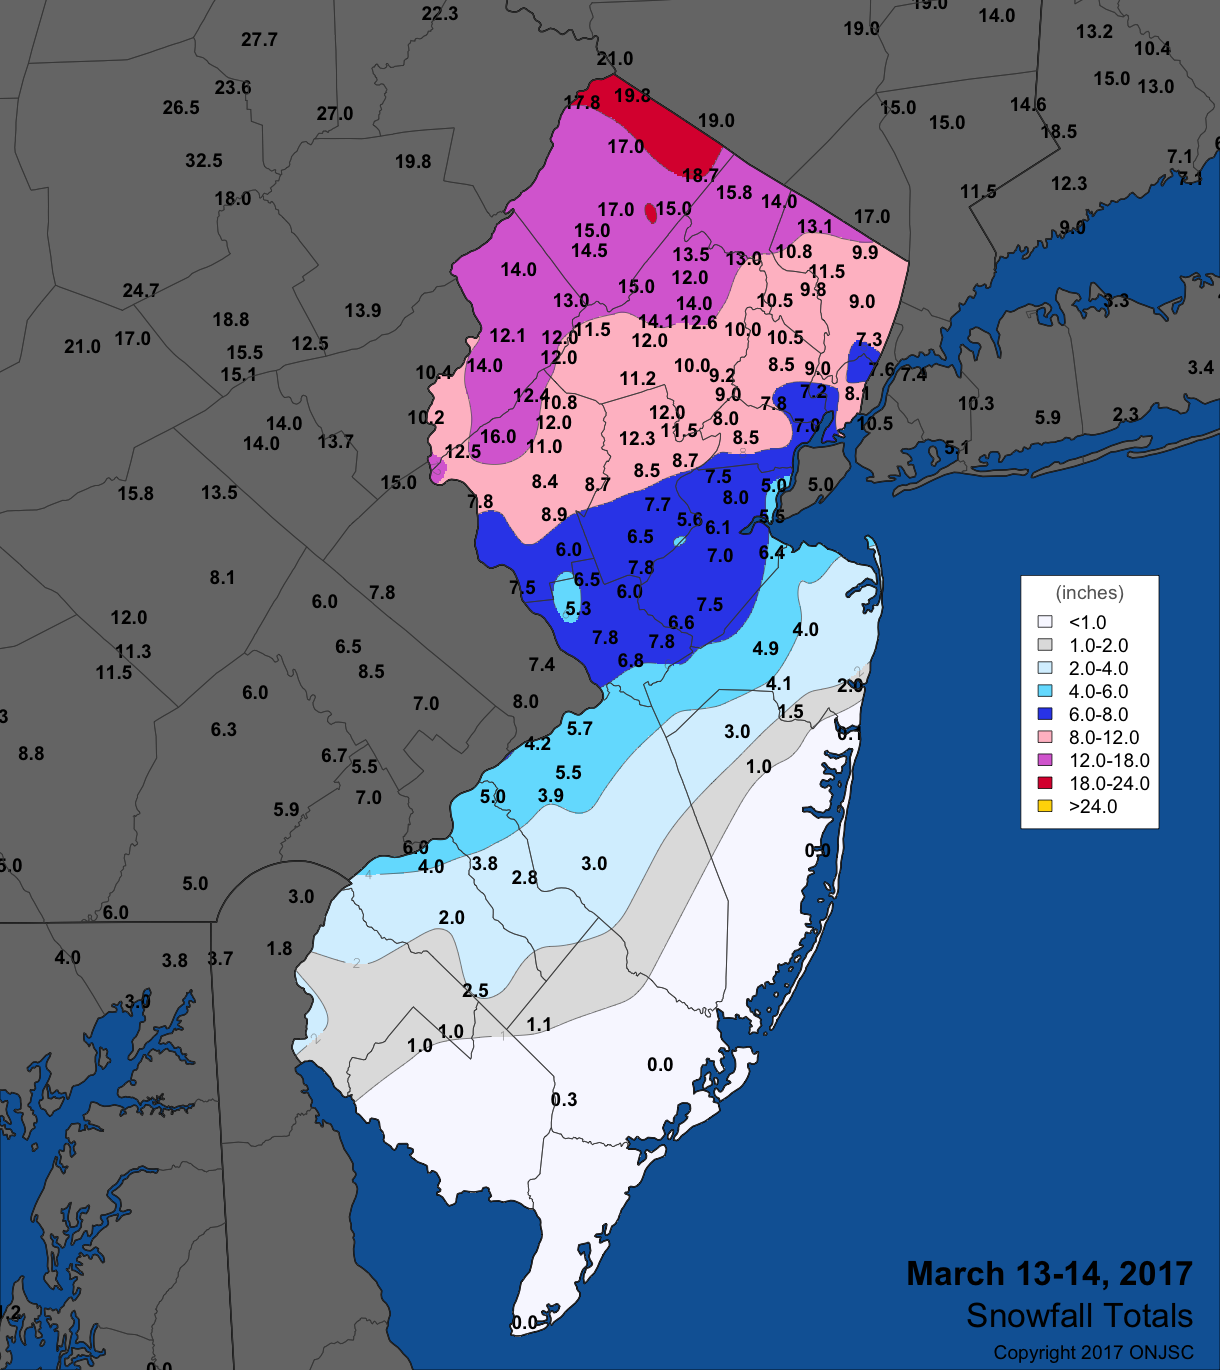 March 13-14 snowfall map